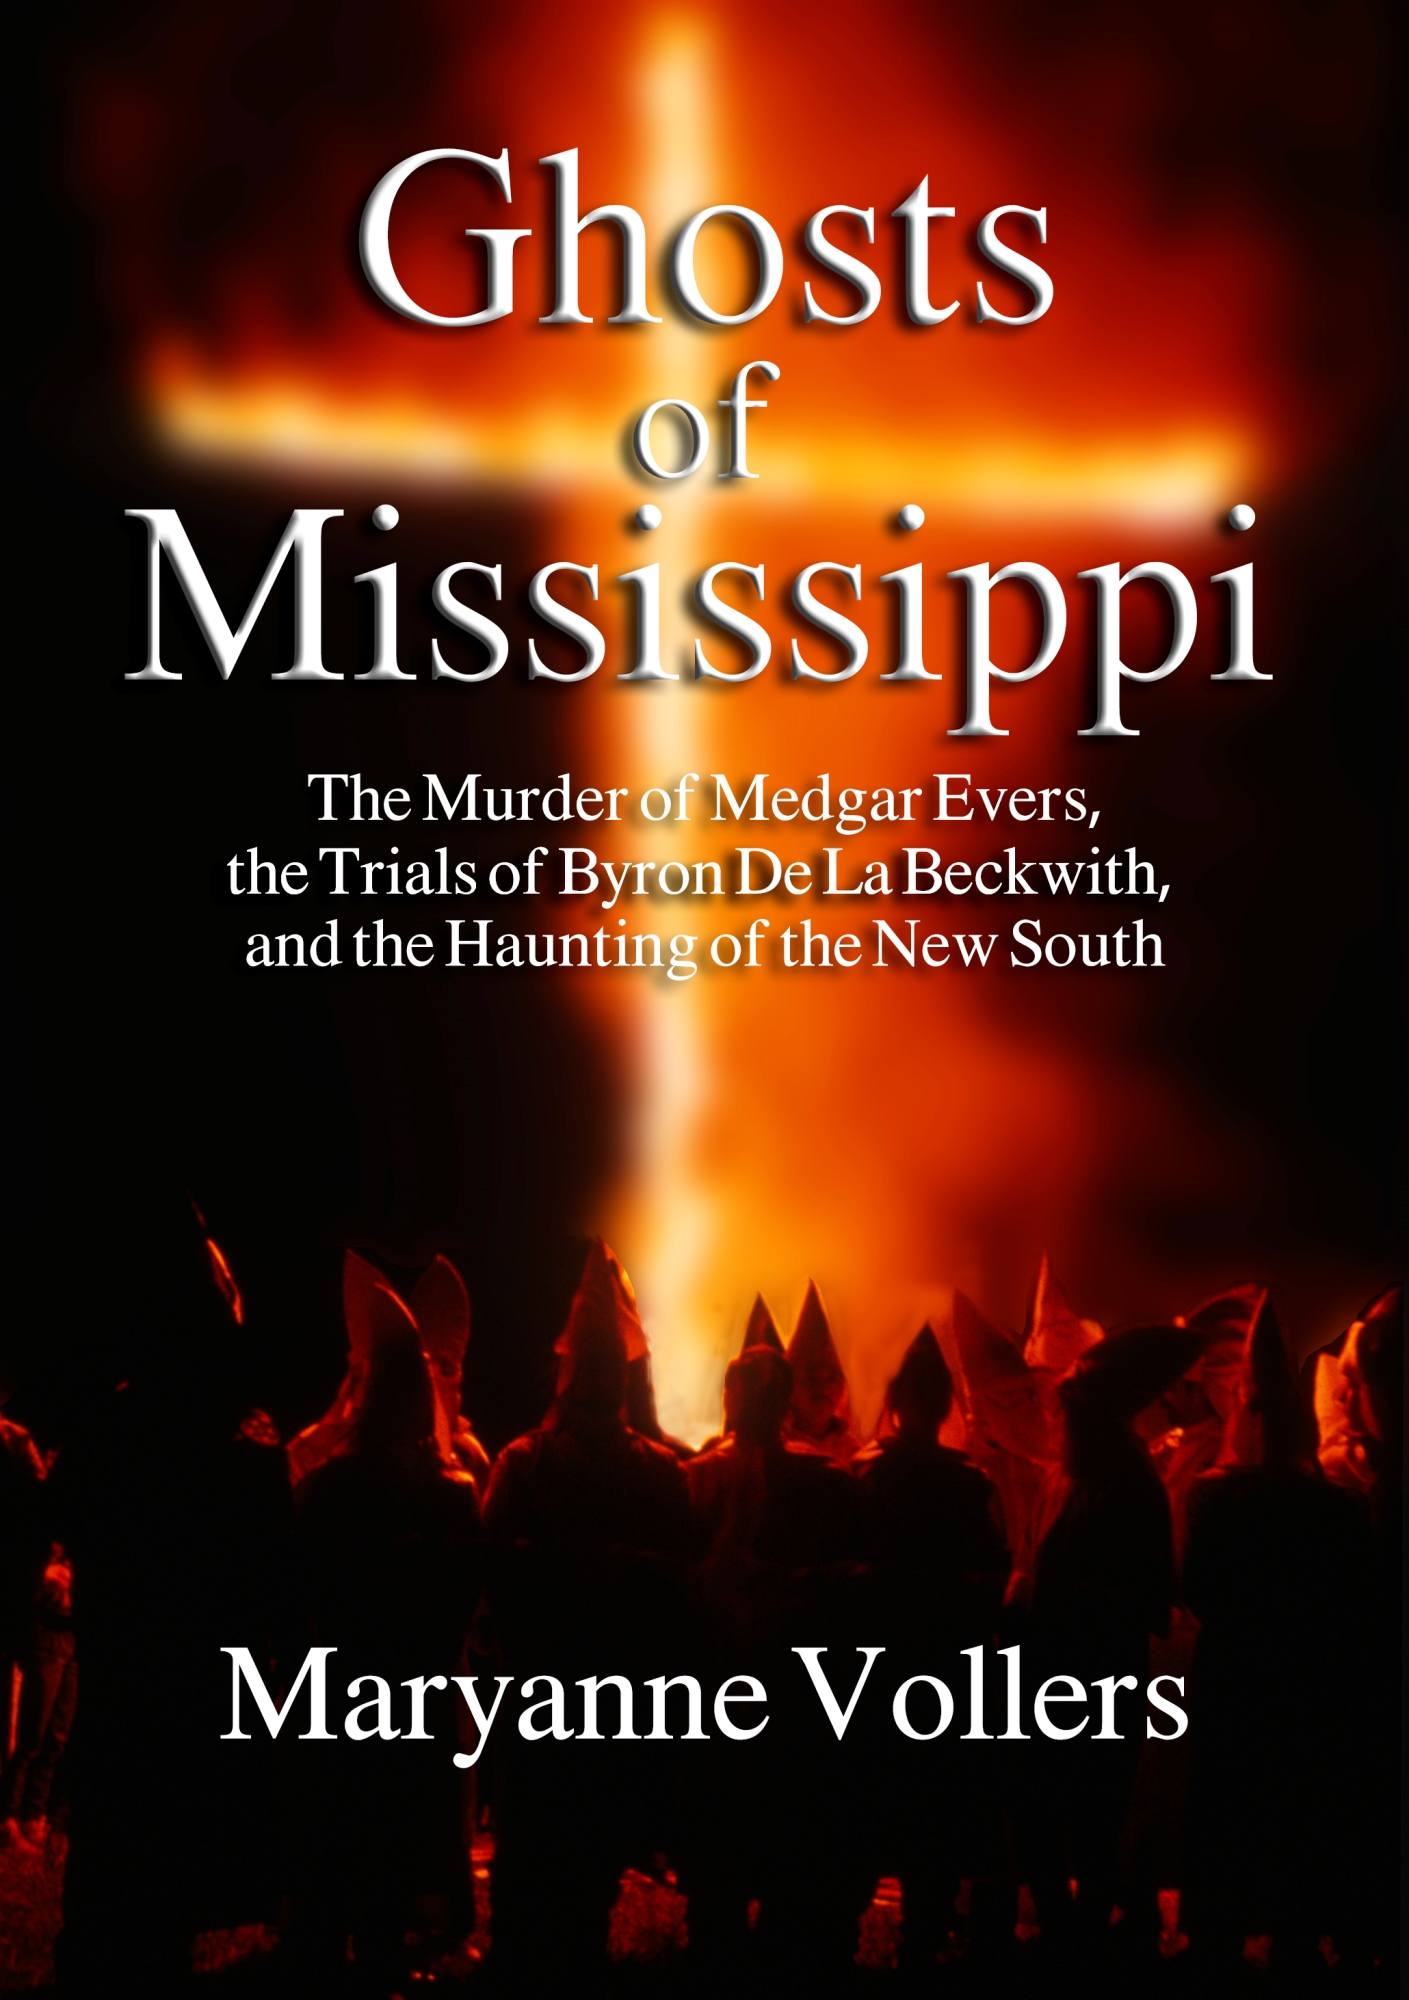 The Ghosts of Mississippi